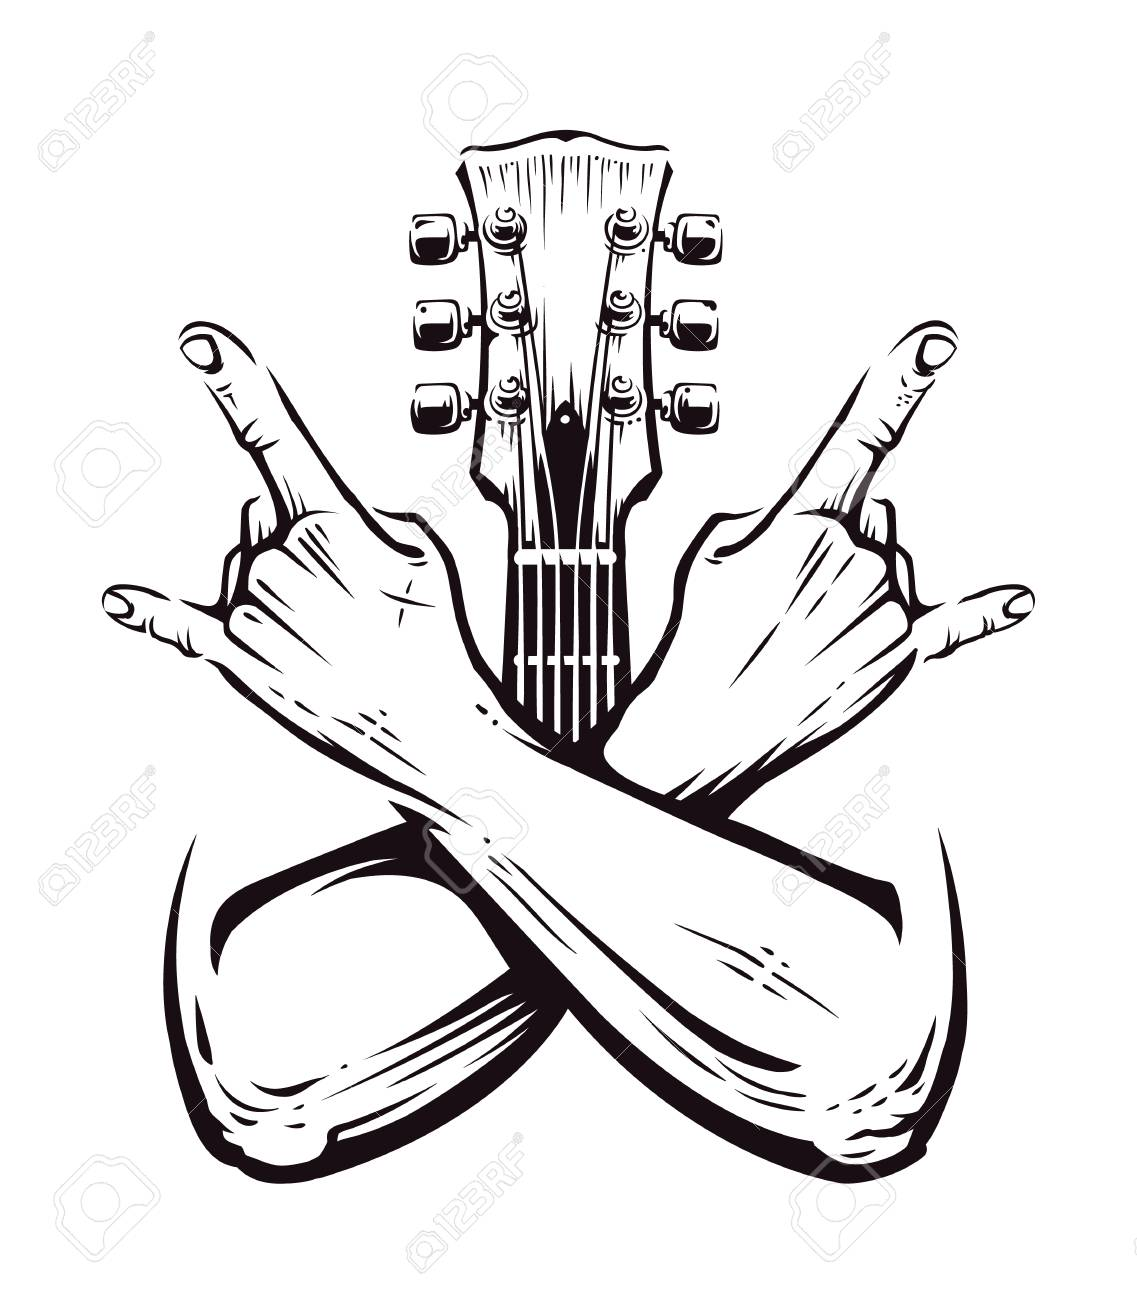 Crossed hands sign rock n roll gesture isolated with guitar neck on white. Punk rock hands sign. Vector illustration. - 102010276